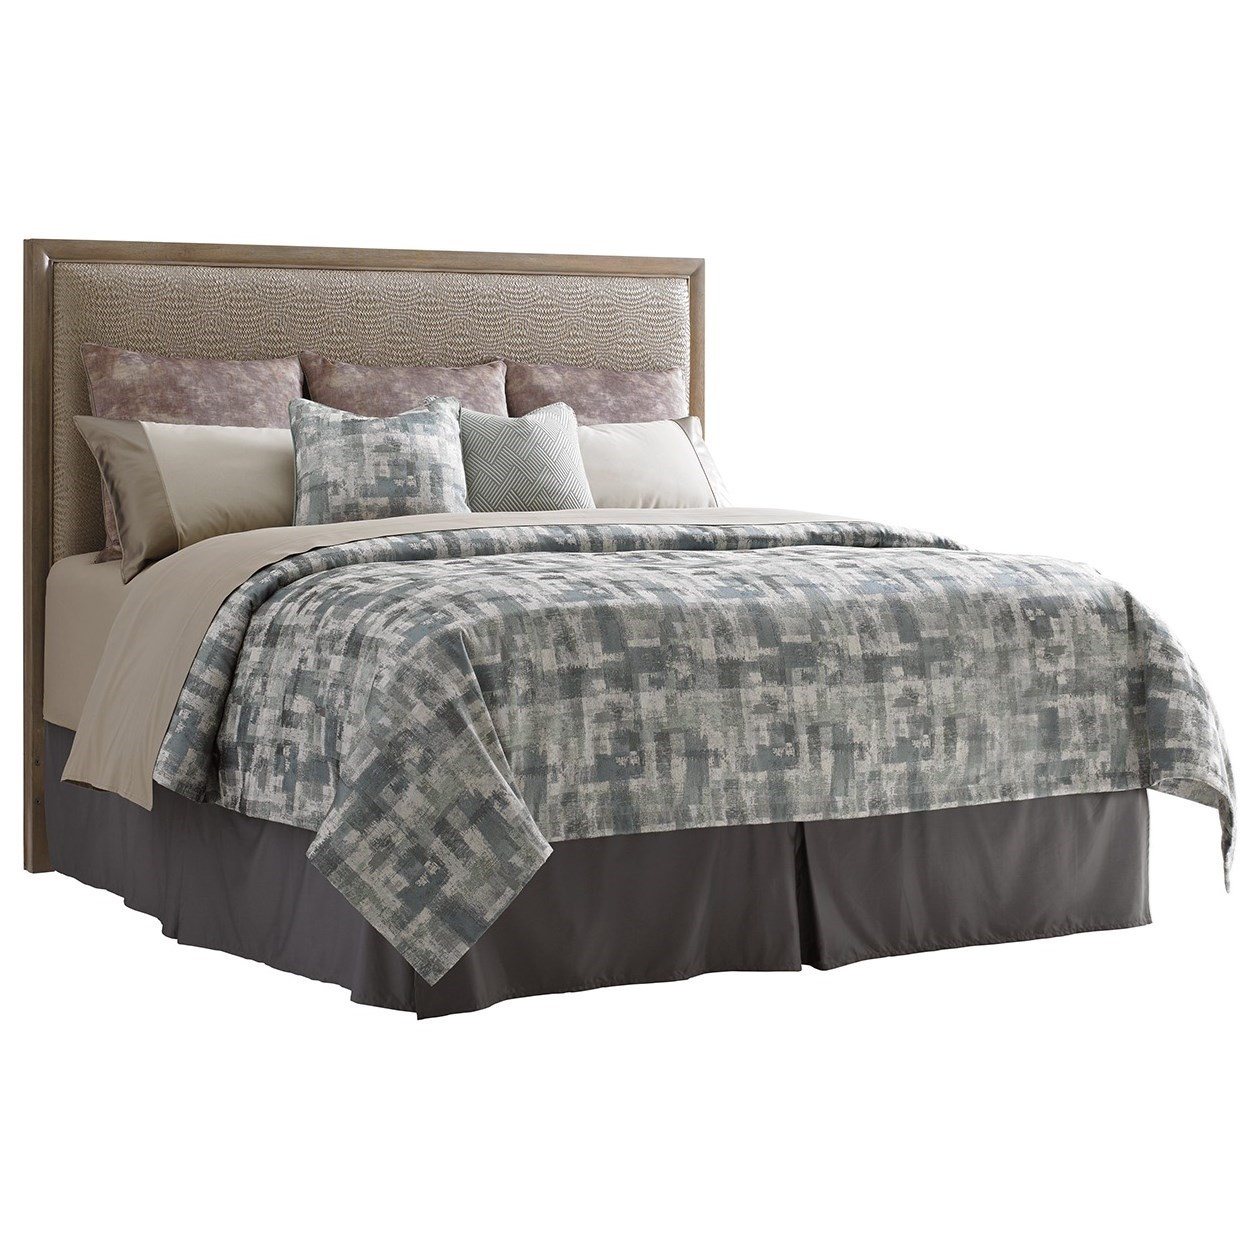 Shadow Play Uptown Panel Bed Headboard 6/0 Cali King by Lexington at Johnny Janosik